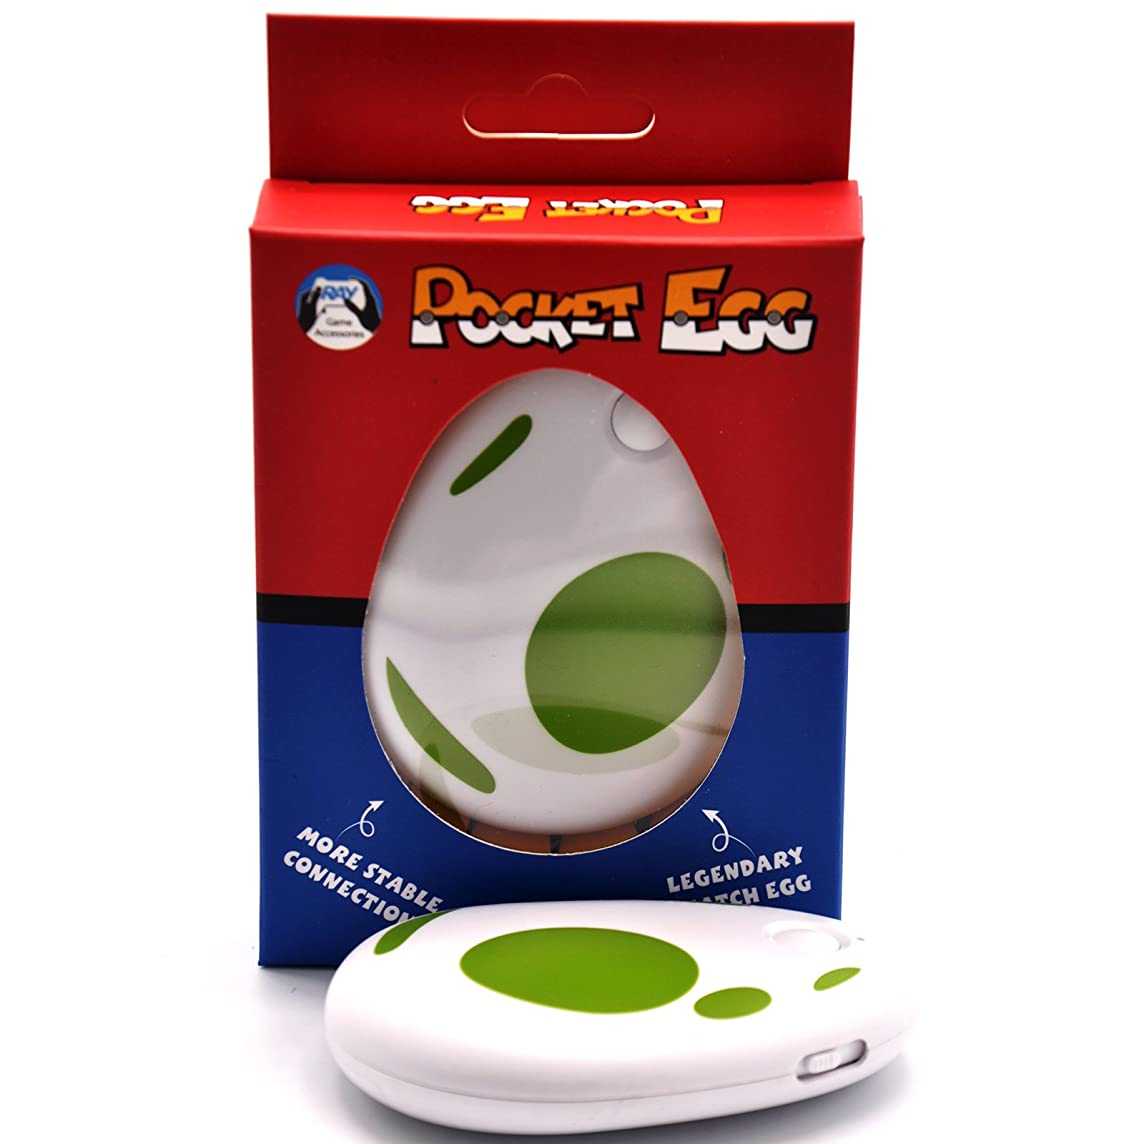 CtrlDepot Pocket Egg Toys Compatible for Pokemon Go Plus Auto Catch & Collect Catcher Bluetooth Interactive for iOS 12.0/Android 8.0 (Green)